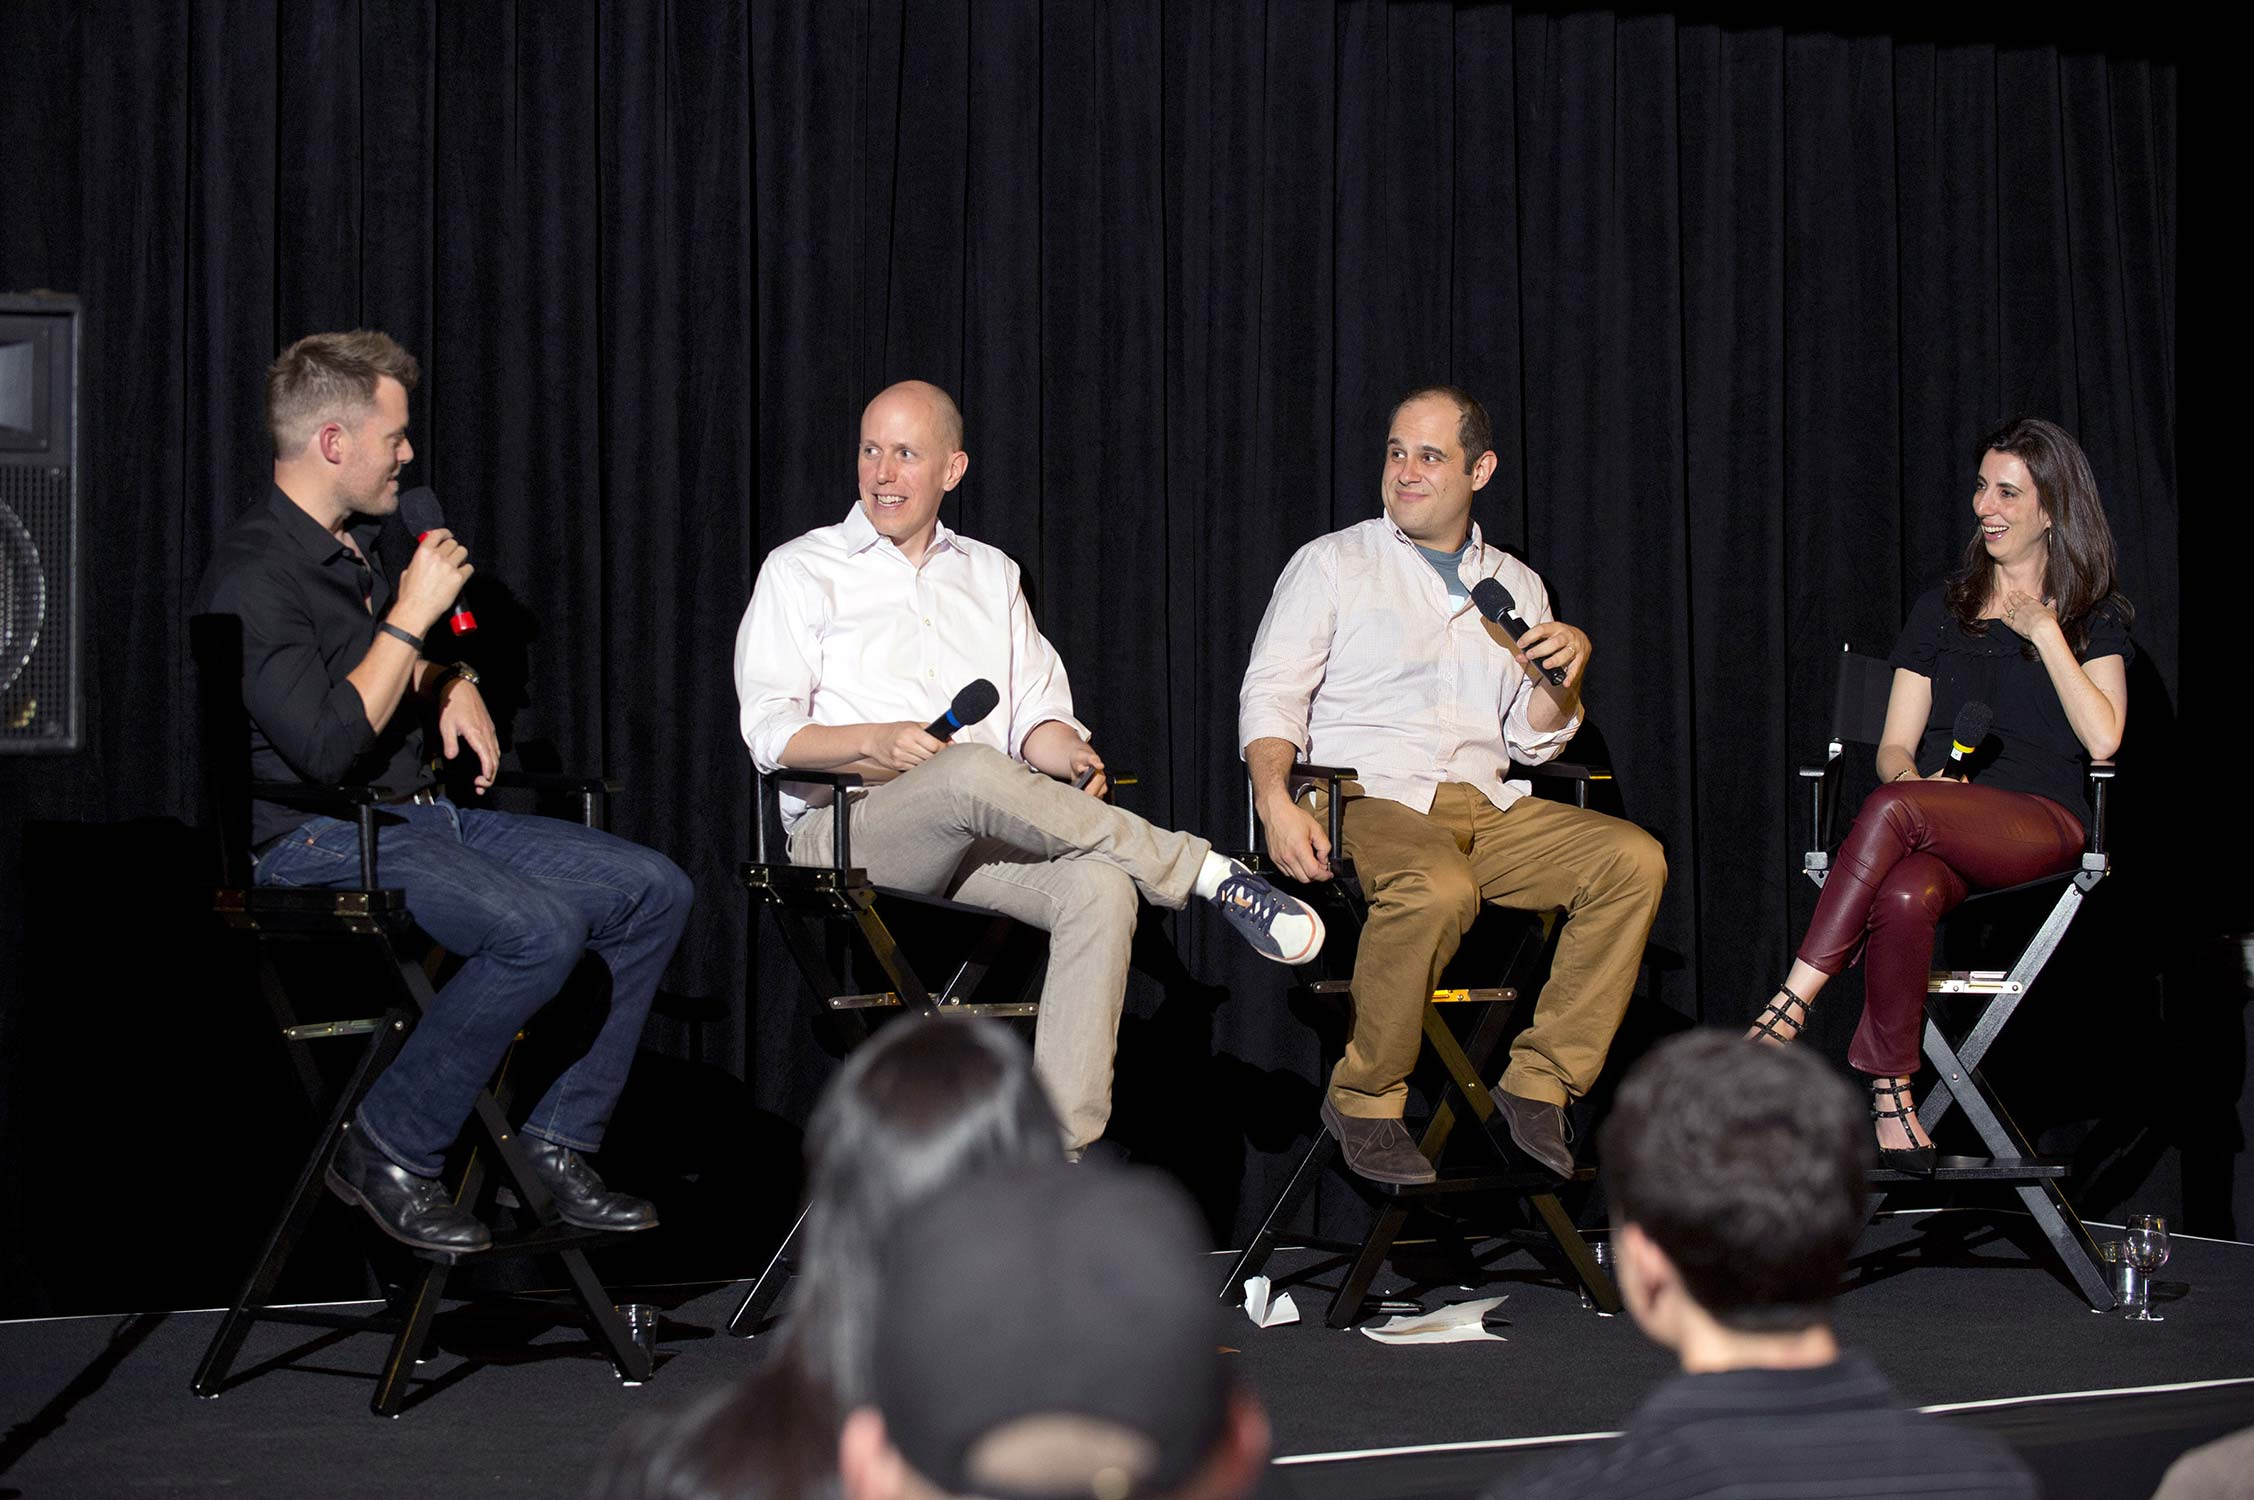 Pictured (left to right) screenwriters Rawson Thurber, John August, Craig Mazin and Aline Brosh McKenna.